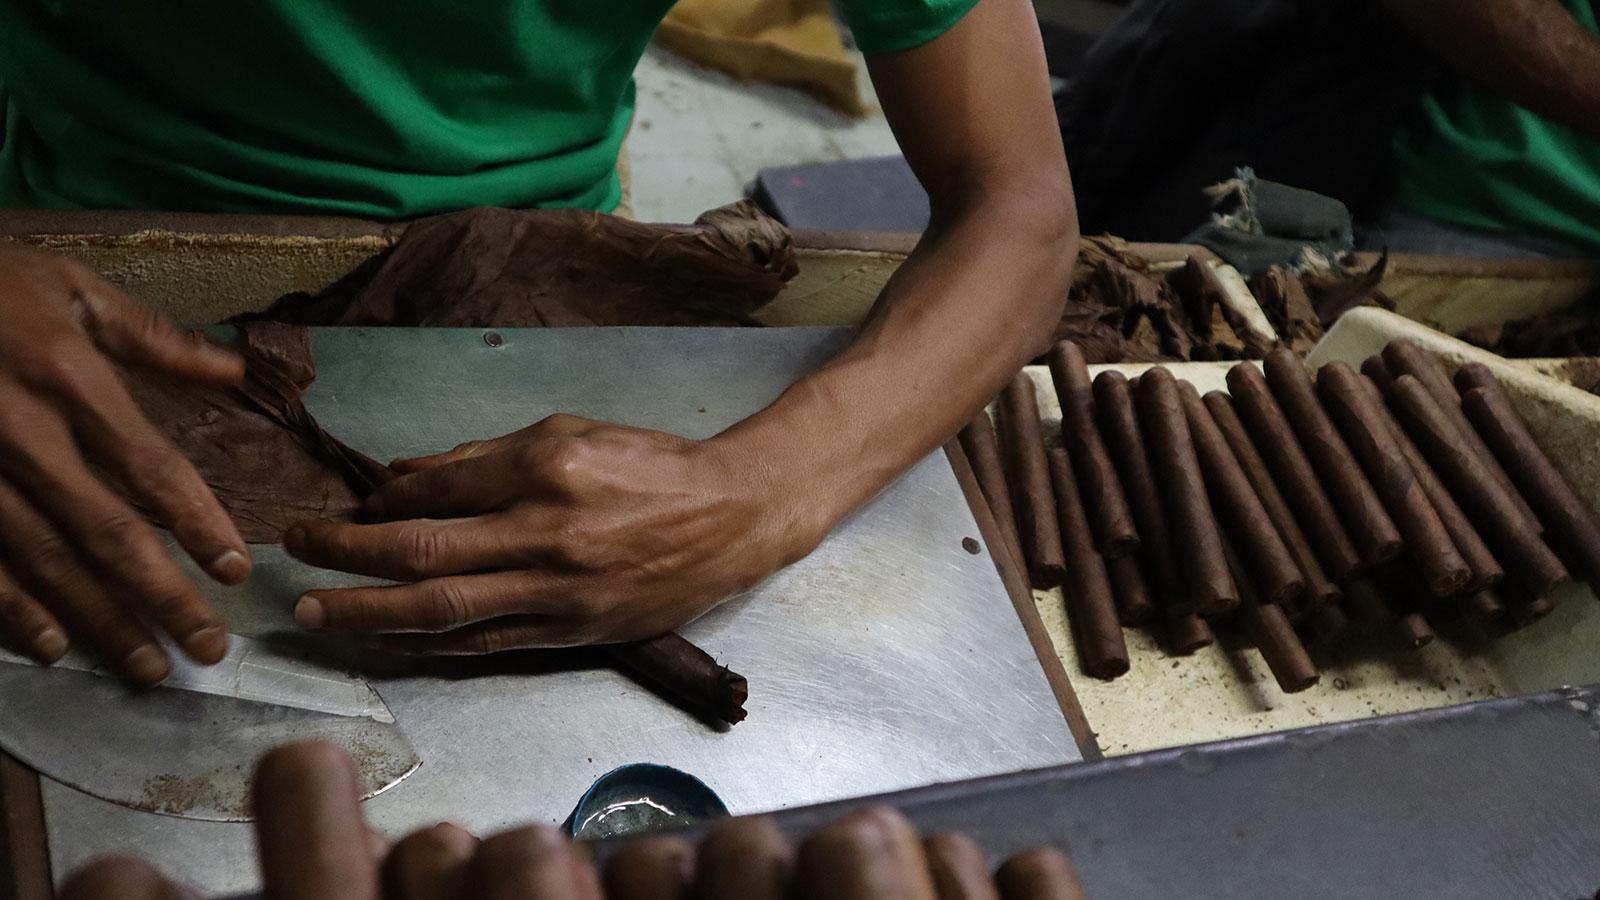 A roller inside the Tabacalera Palma cigar factory in the Dominican Republic.